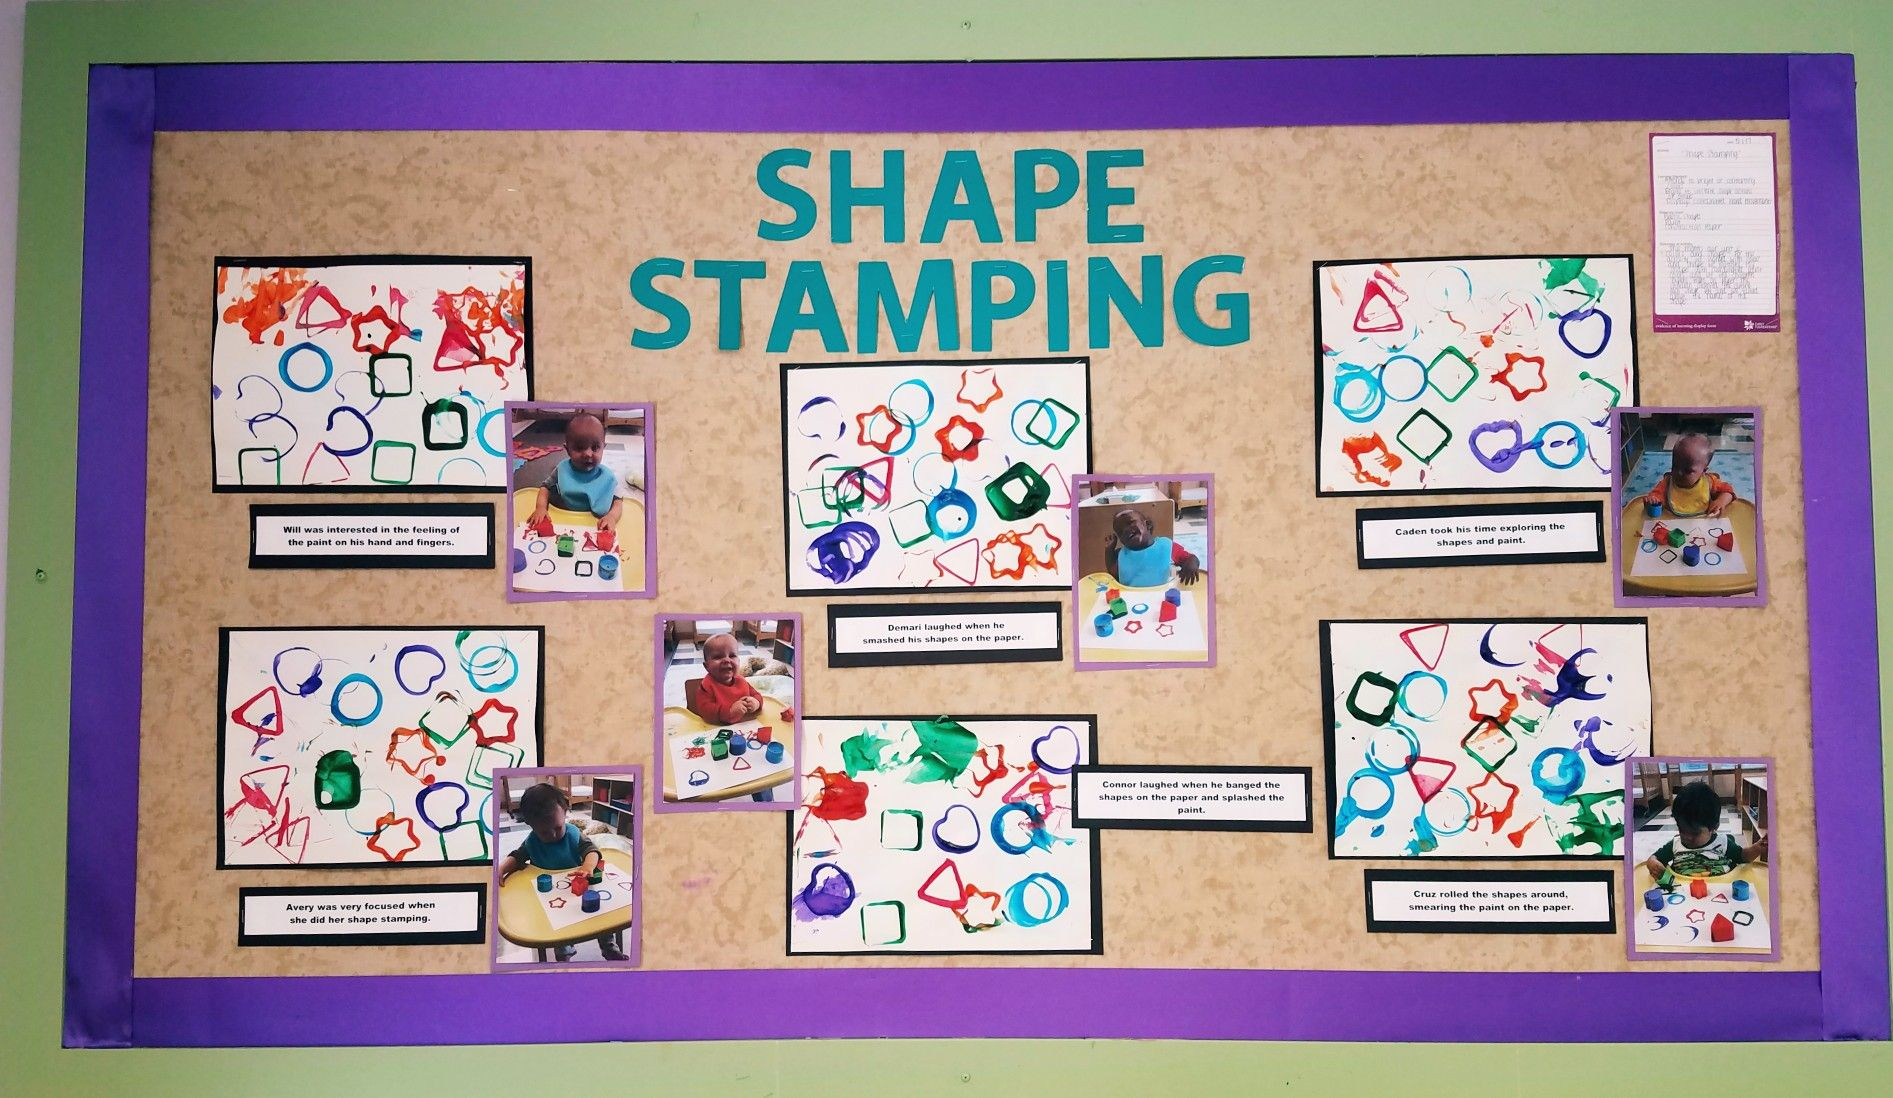 Shape Stamping Bulletin Board Infant Art Projects Shapes And Colors Unit Baby Art Projects Infant Toddler Classroom Preschool Arts And Crafts